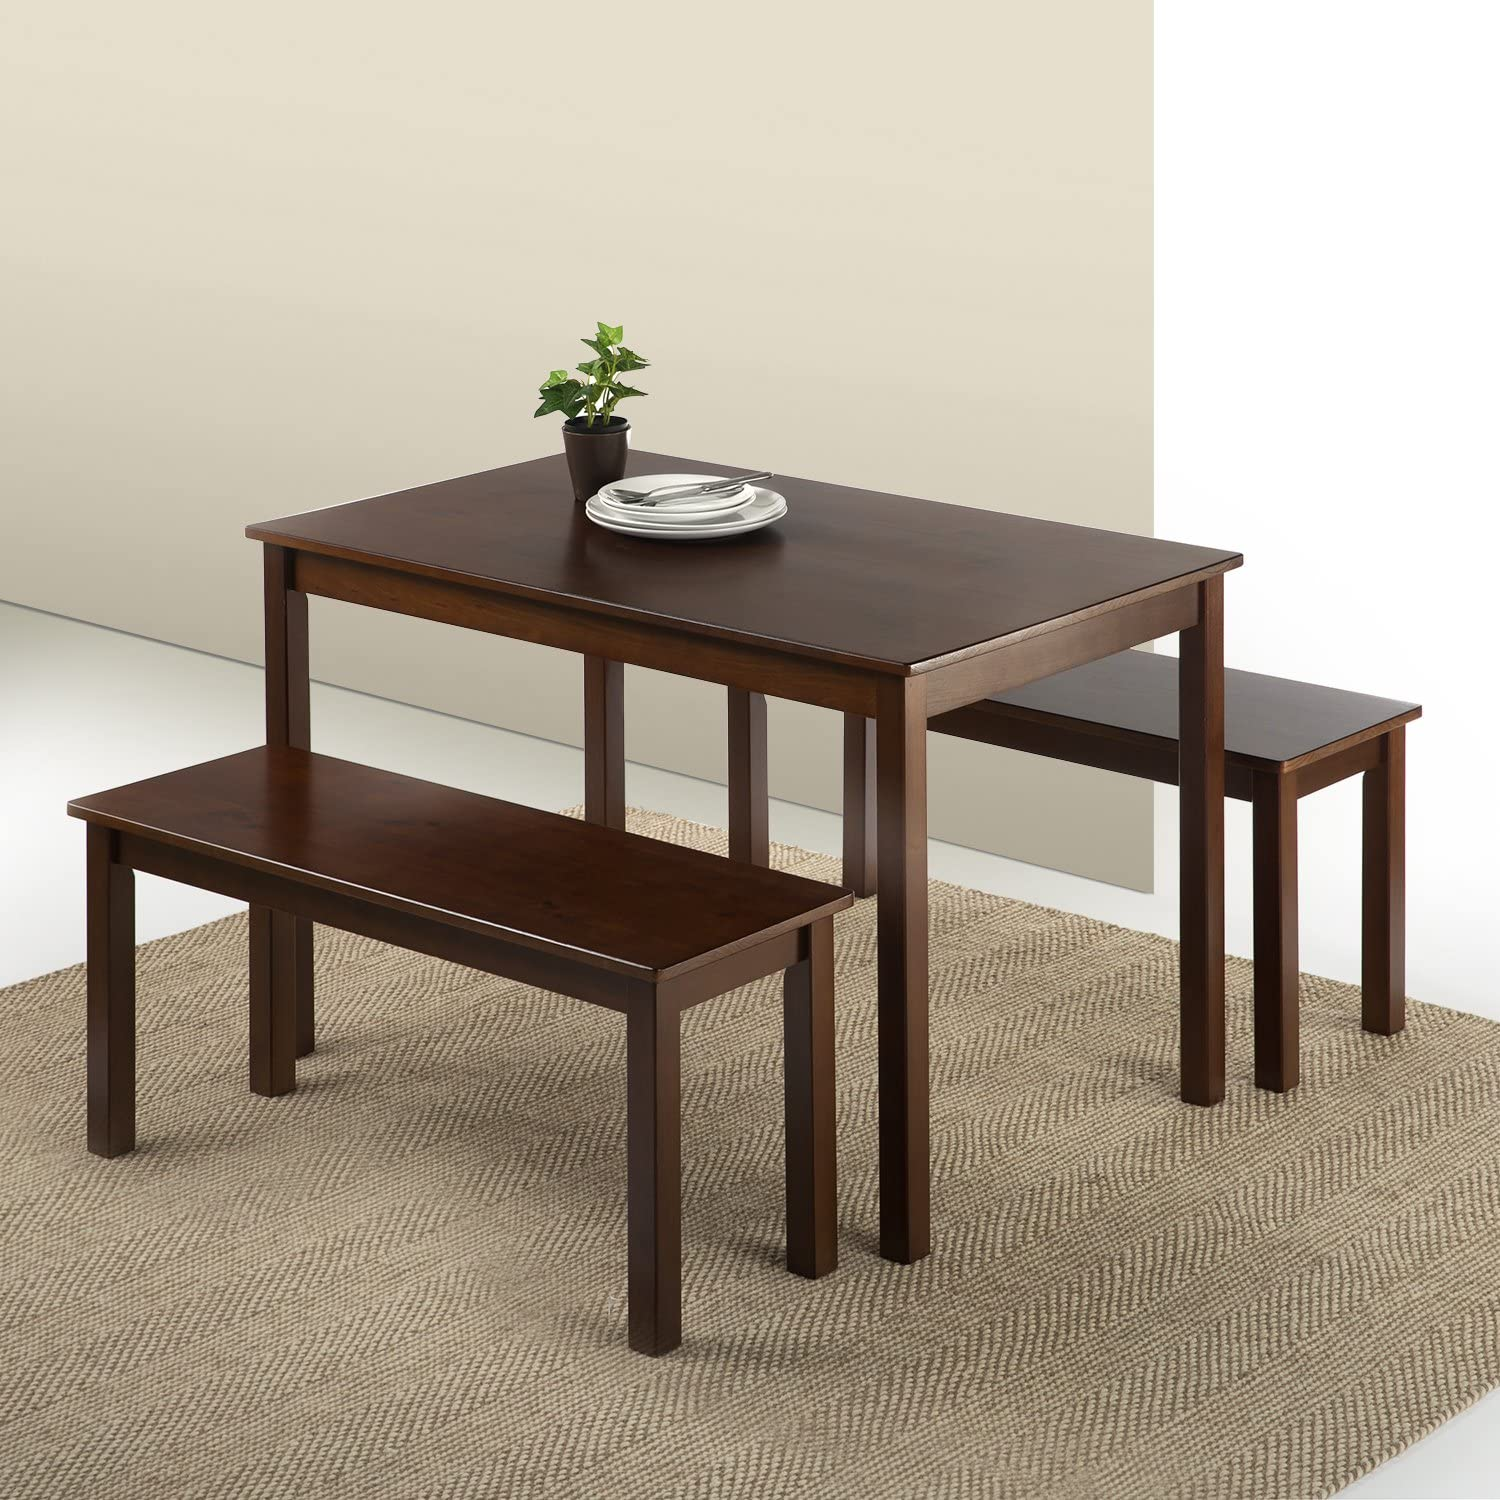 Zinus Juliet Espresso Wood Dining Table with Two Benches 3 Piece Set